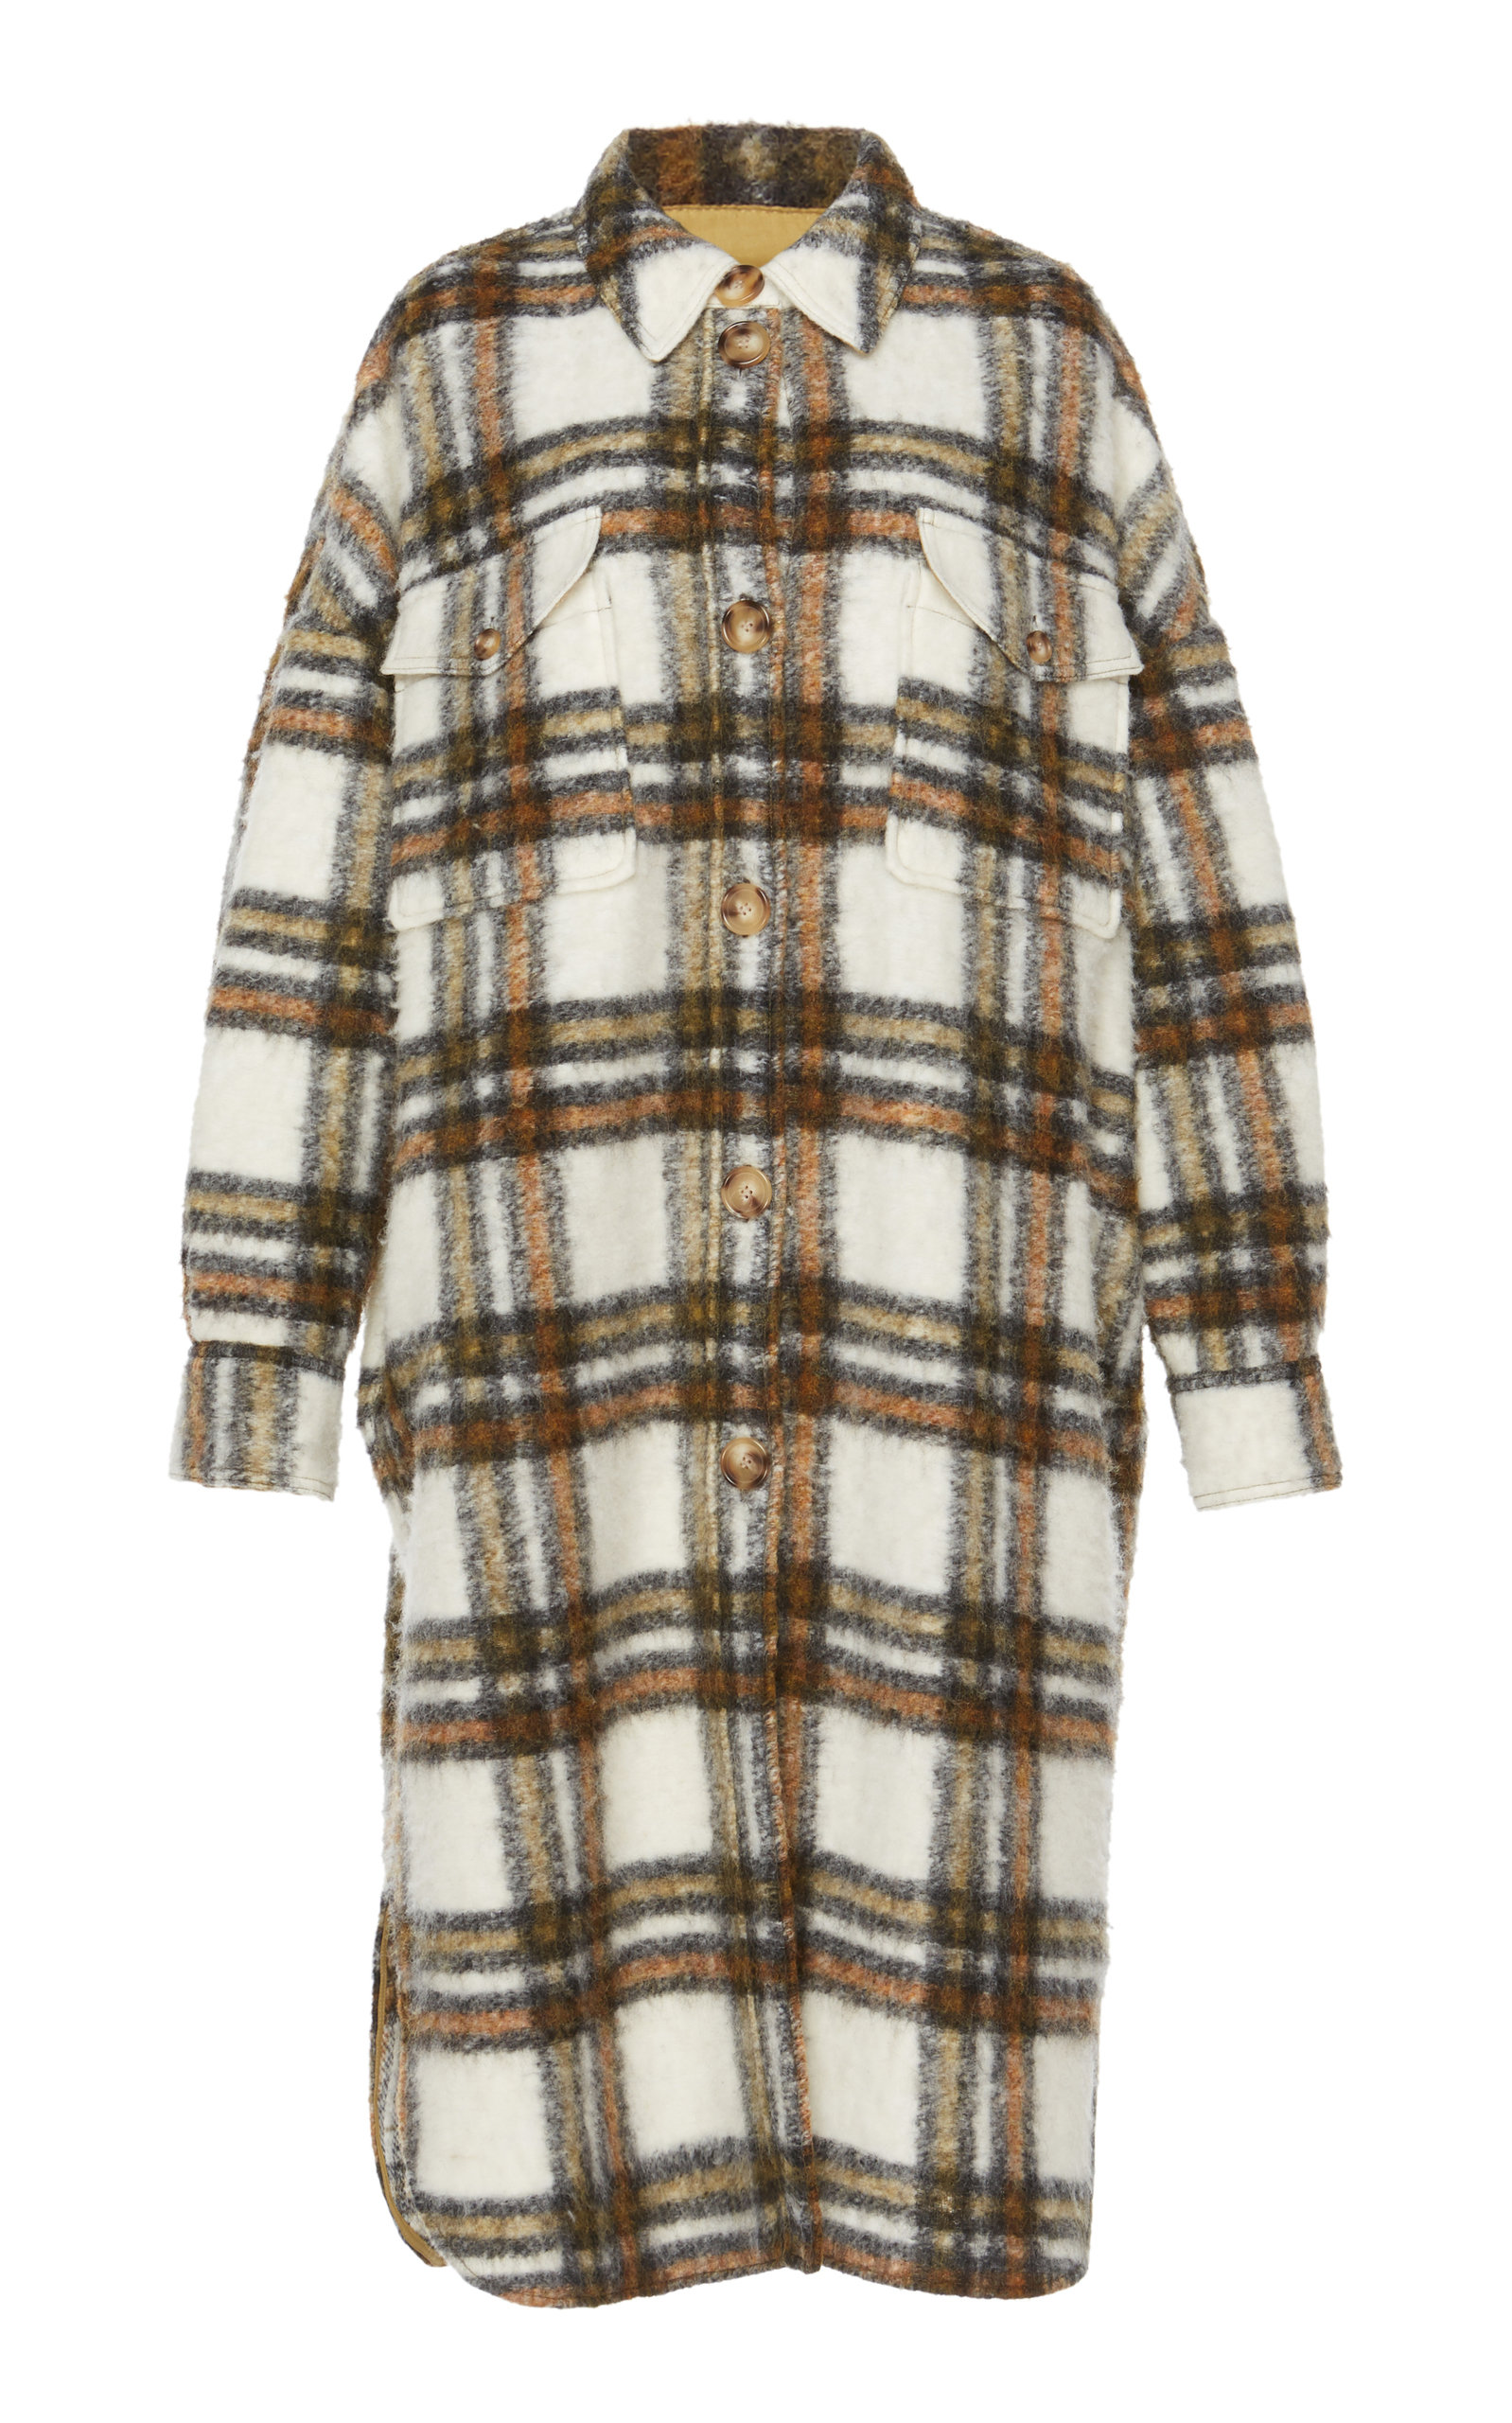 ISABEL MARANT ÉTOILE | Isabel Marant Étoile Gabrion Checked Brushed Wool-Blend Coat | Goxip